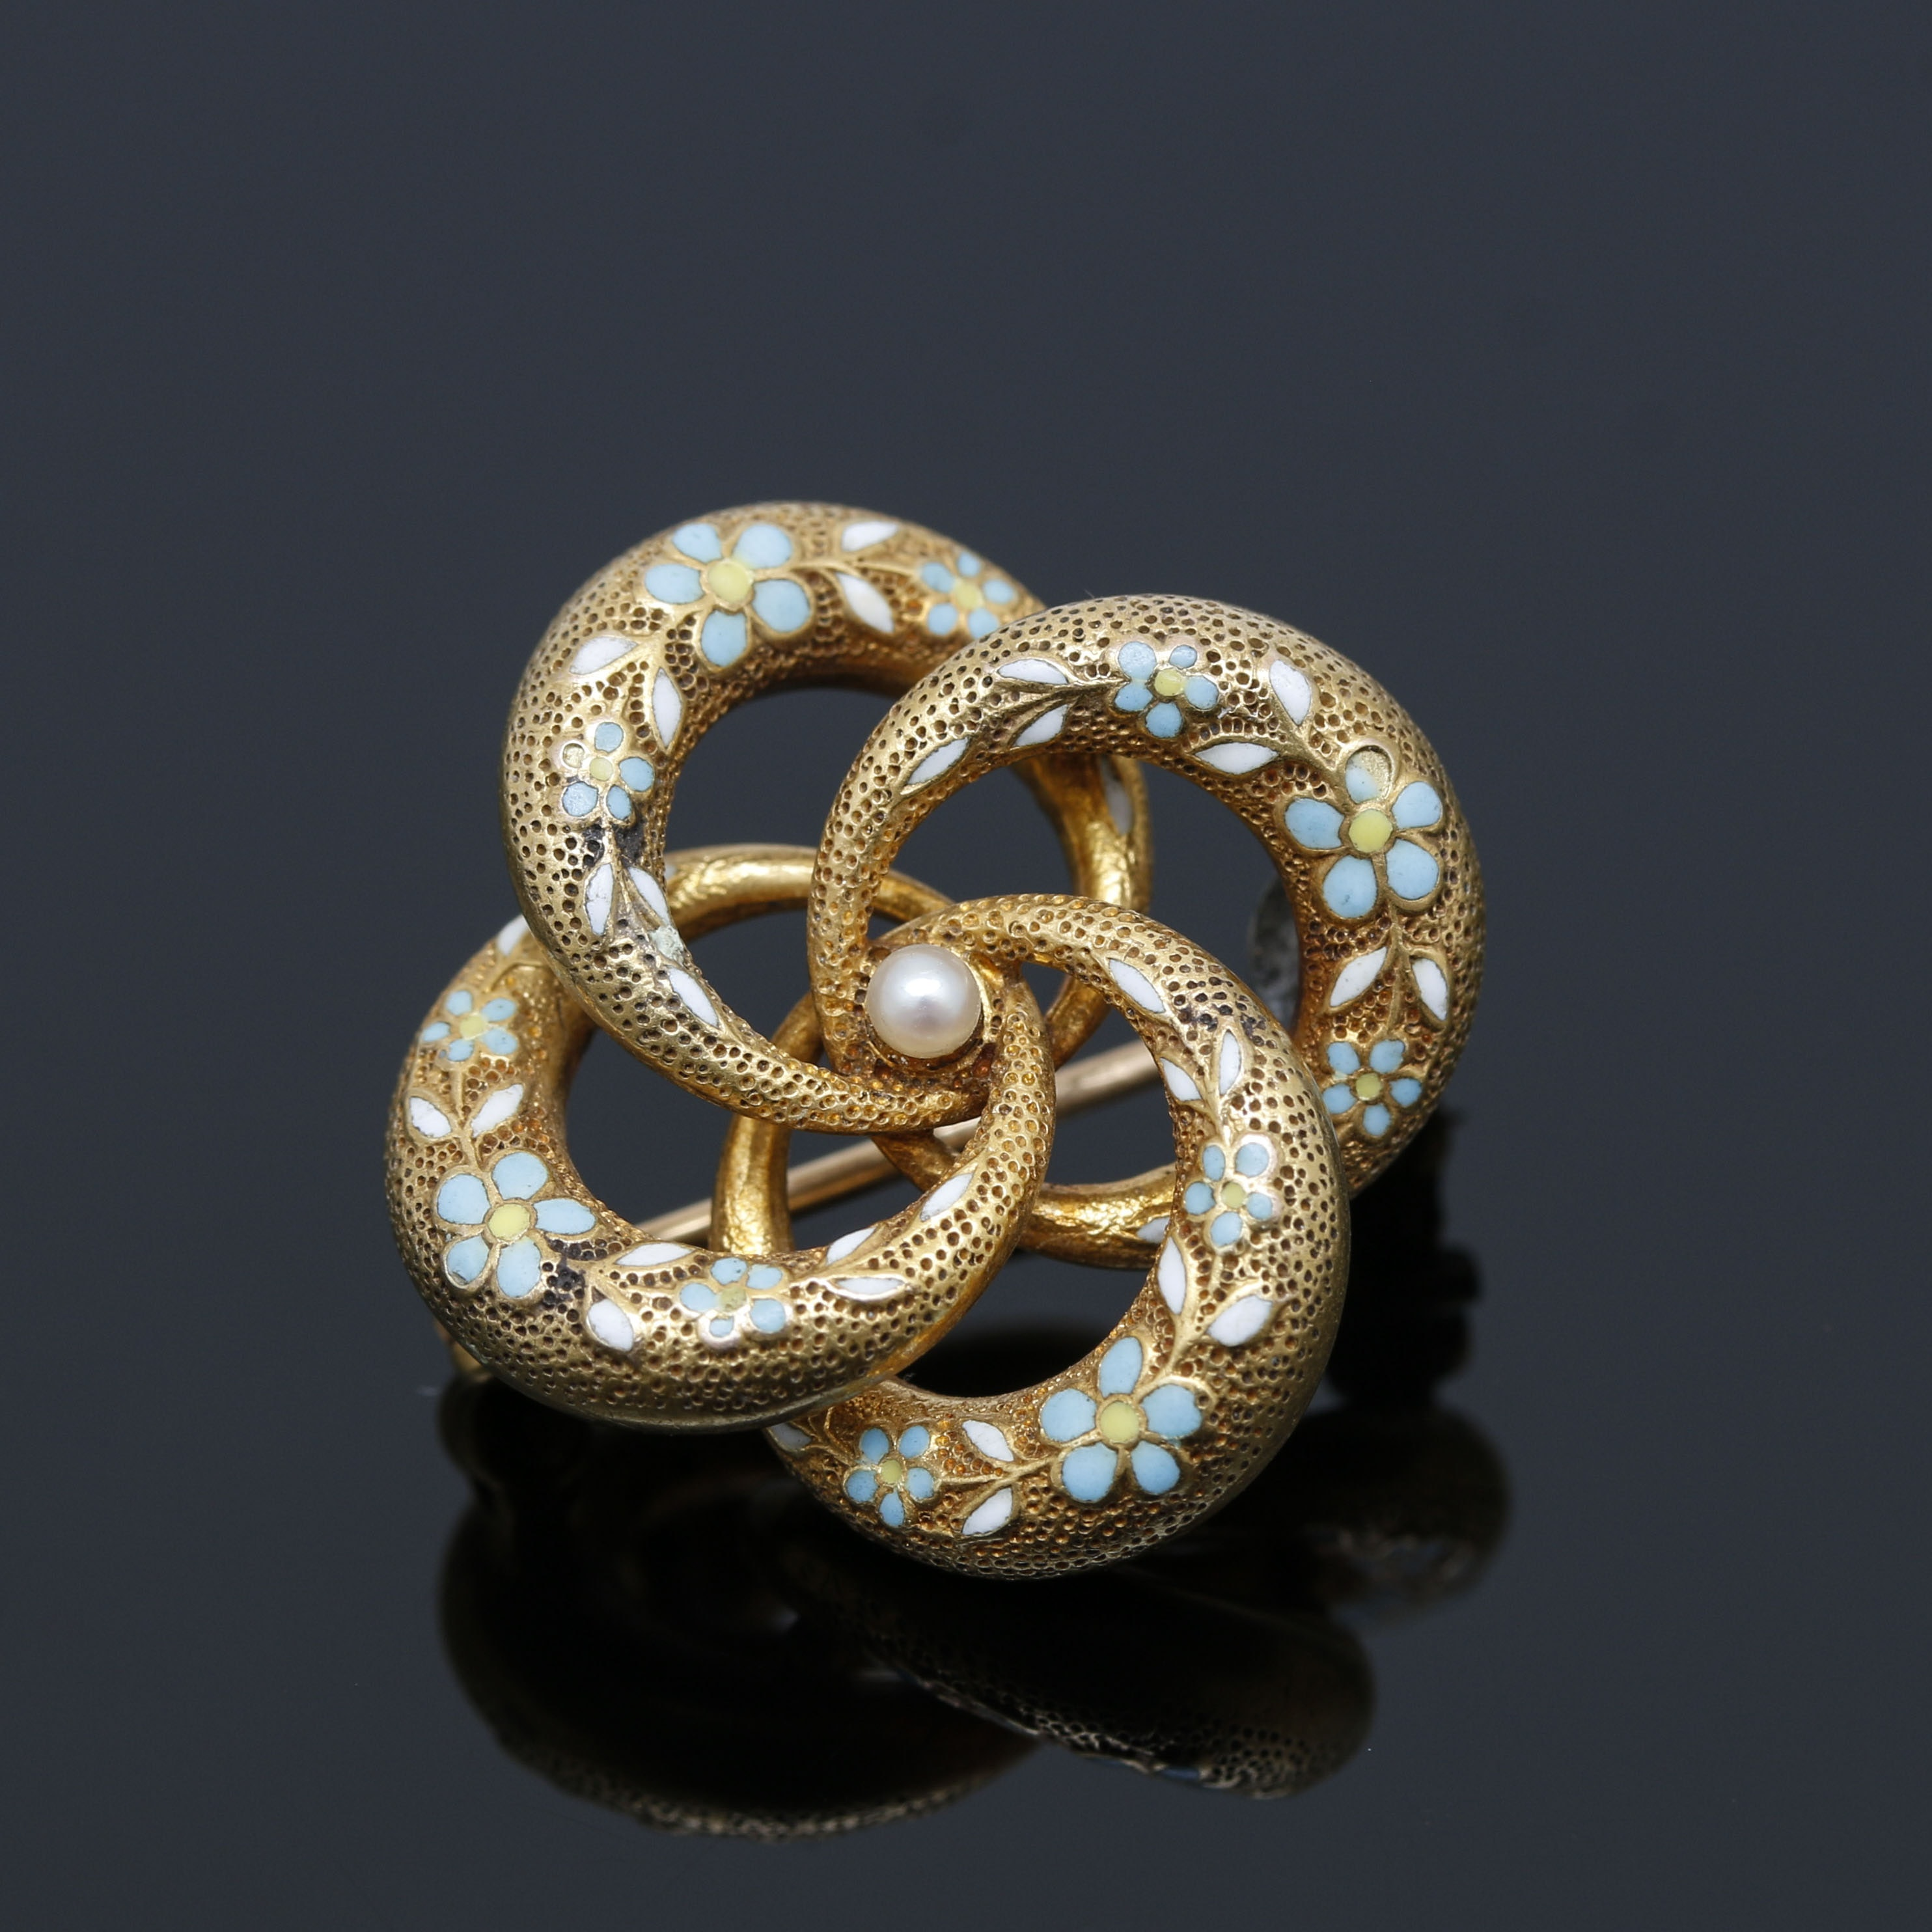 Art Nouveau 14K Yellow Gold Cultured Seed Pearl and Enamel Brooch